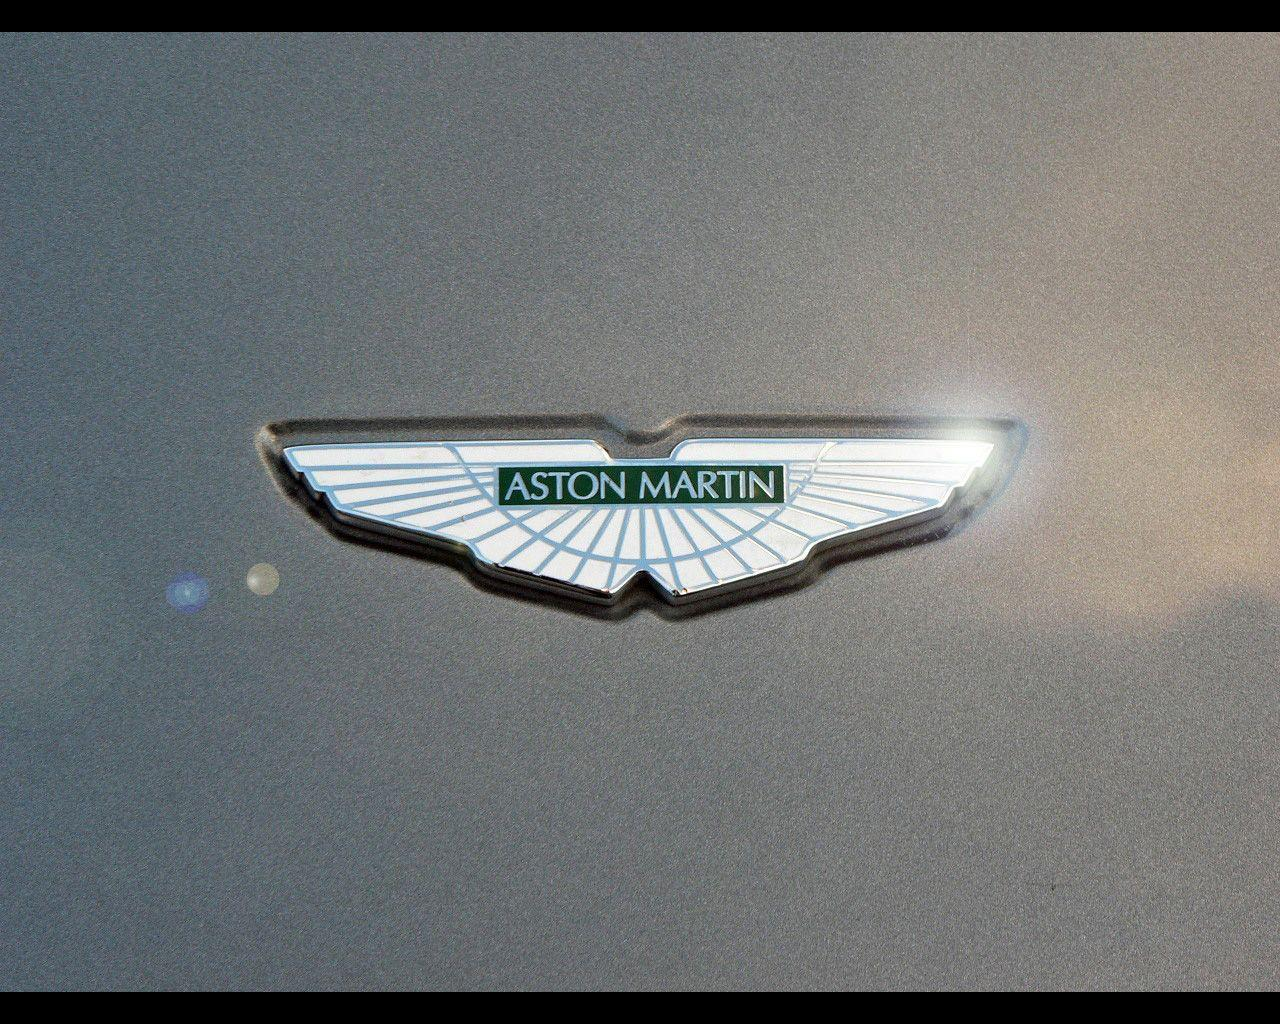 Aston Martin Symbol Car Pictures